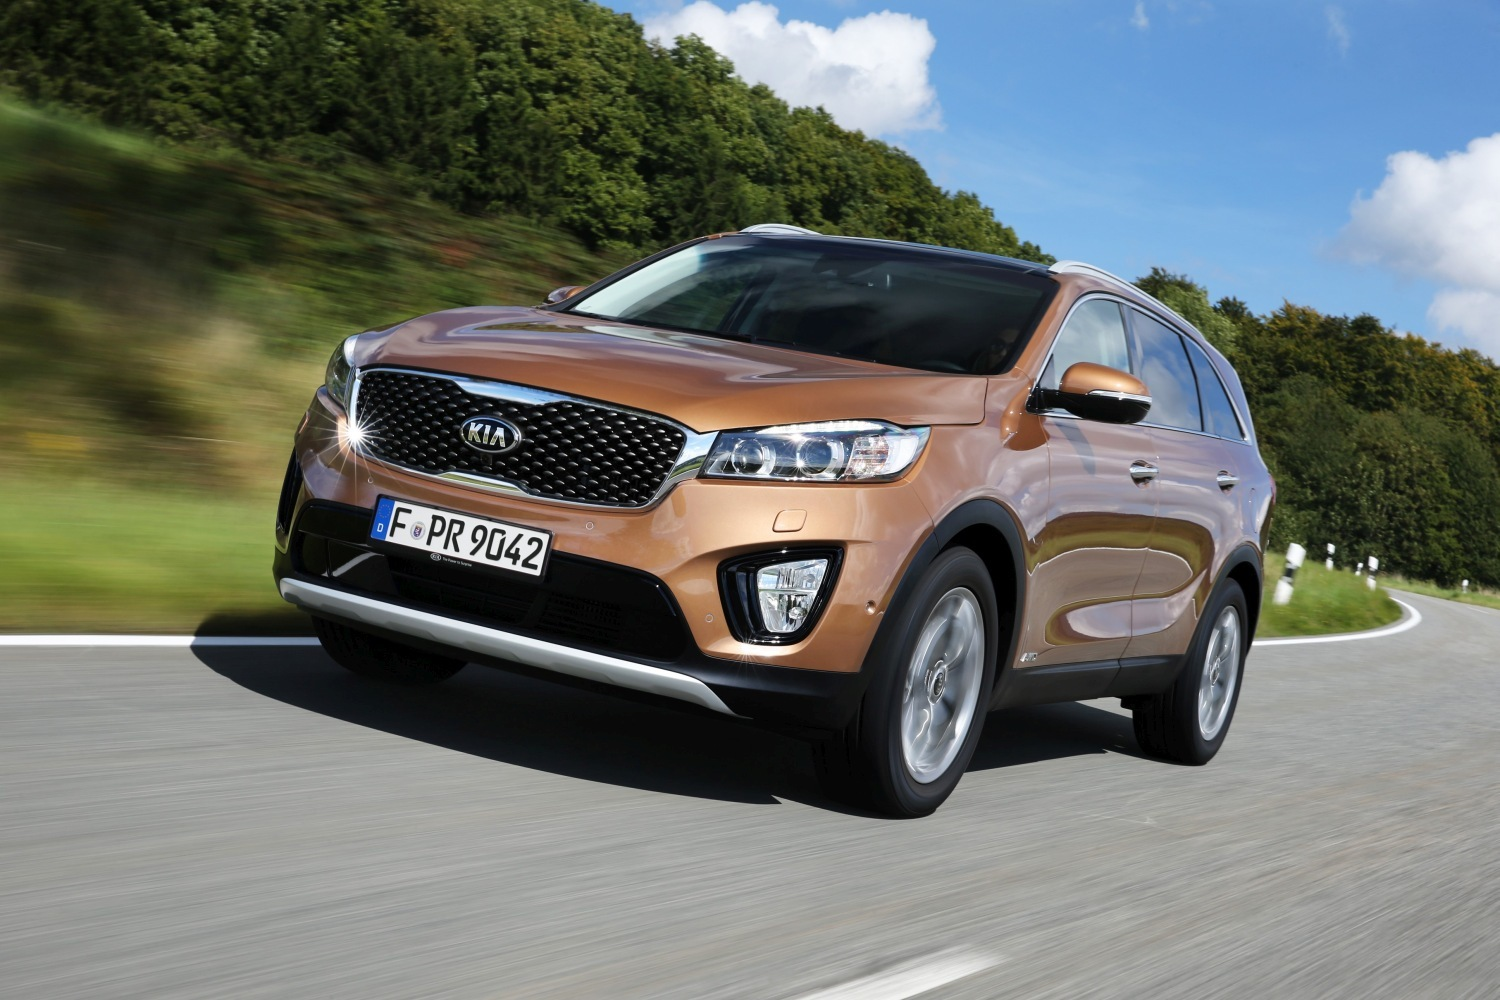 Full Gallery & Details of 2015 Kia Sorento Ahead Paris Motor Show